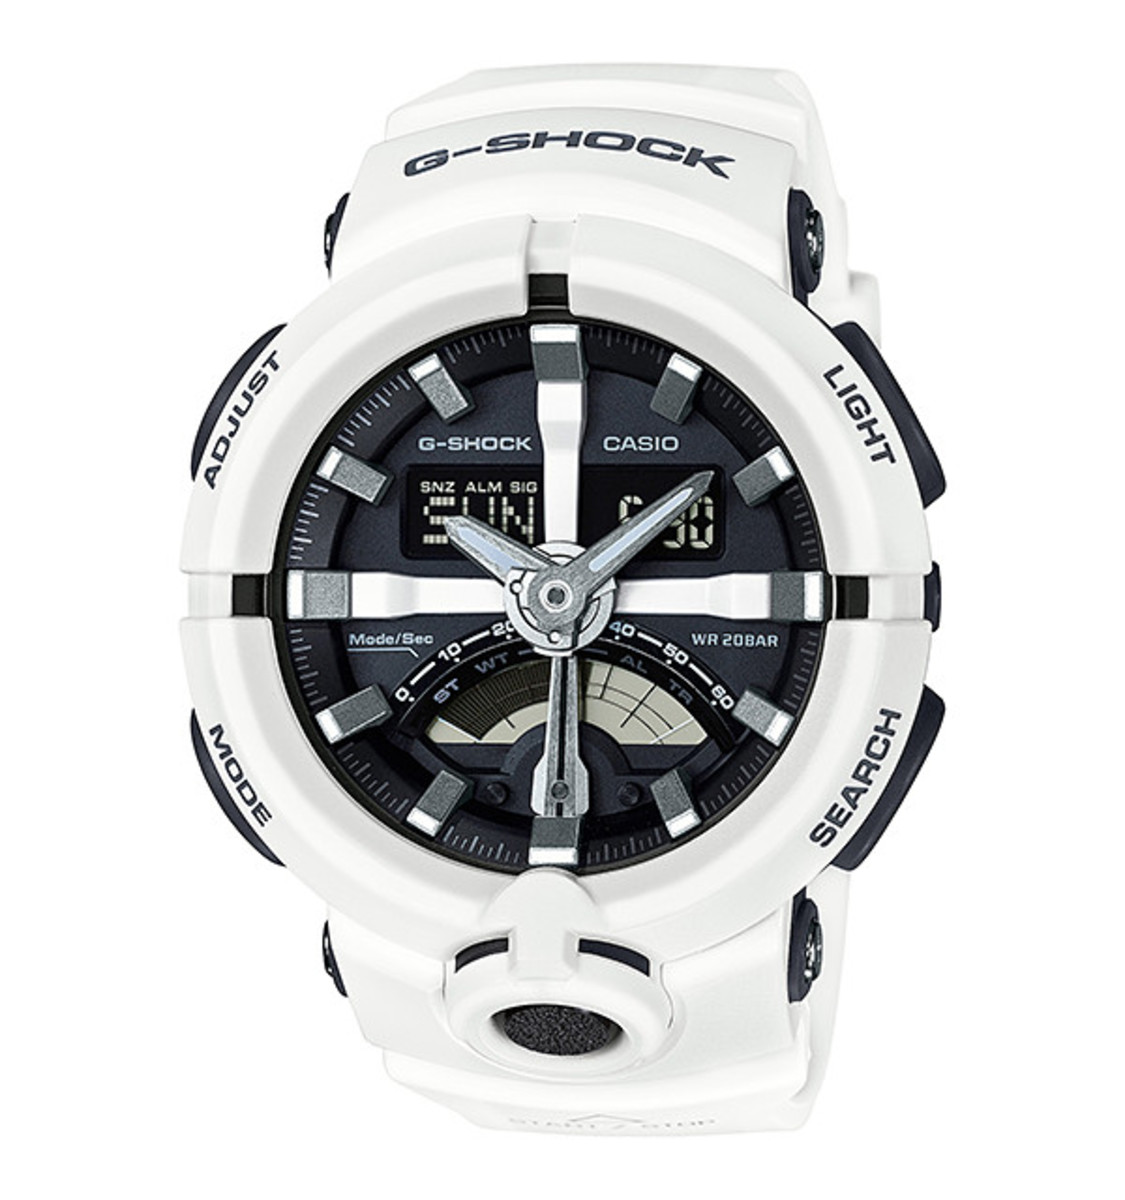 casio-g-shock-ga-500-series-urban-sports-02.jpg